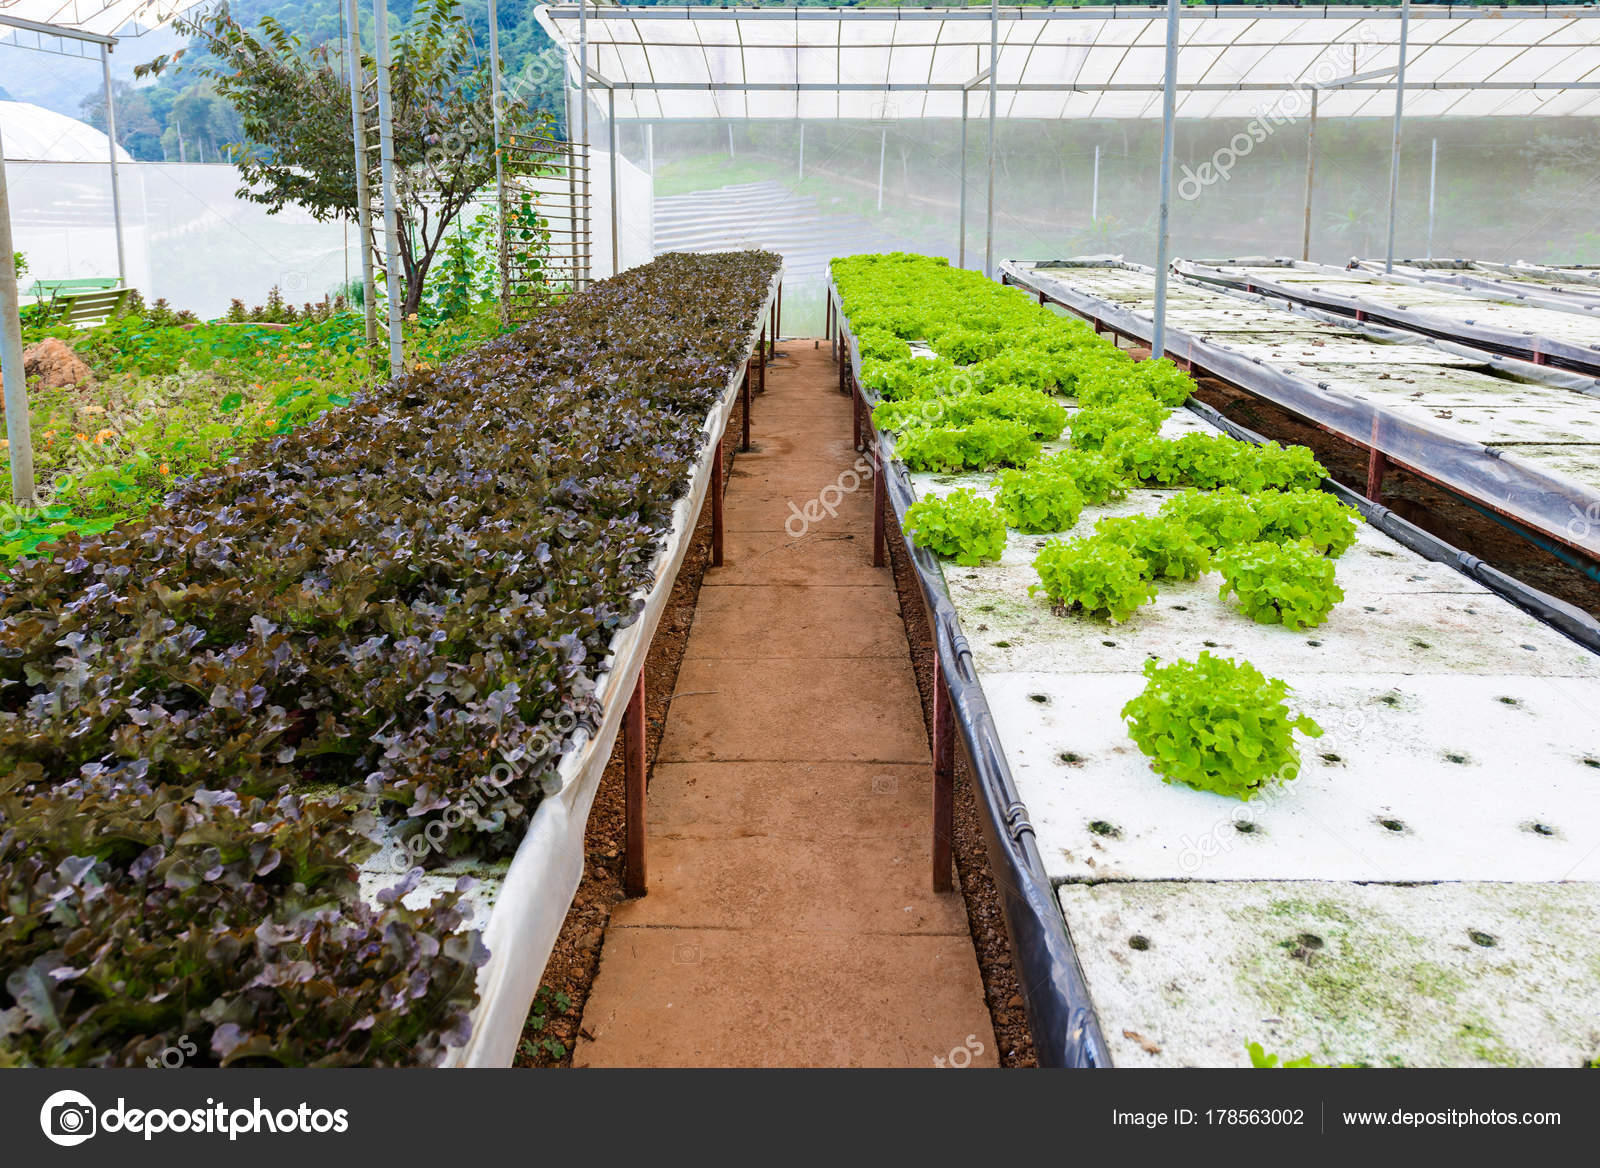 Hydroponic Growing Uses Mineral Nutrient Solutions Feed Plants Water ...